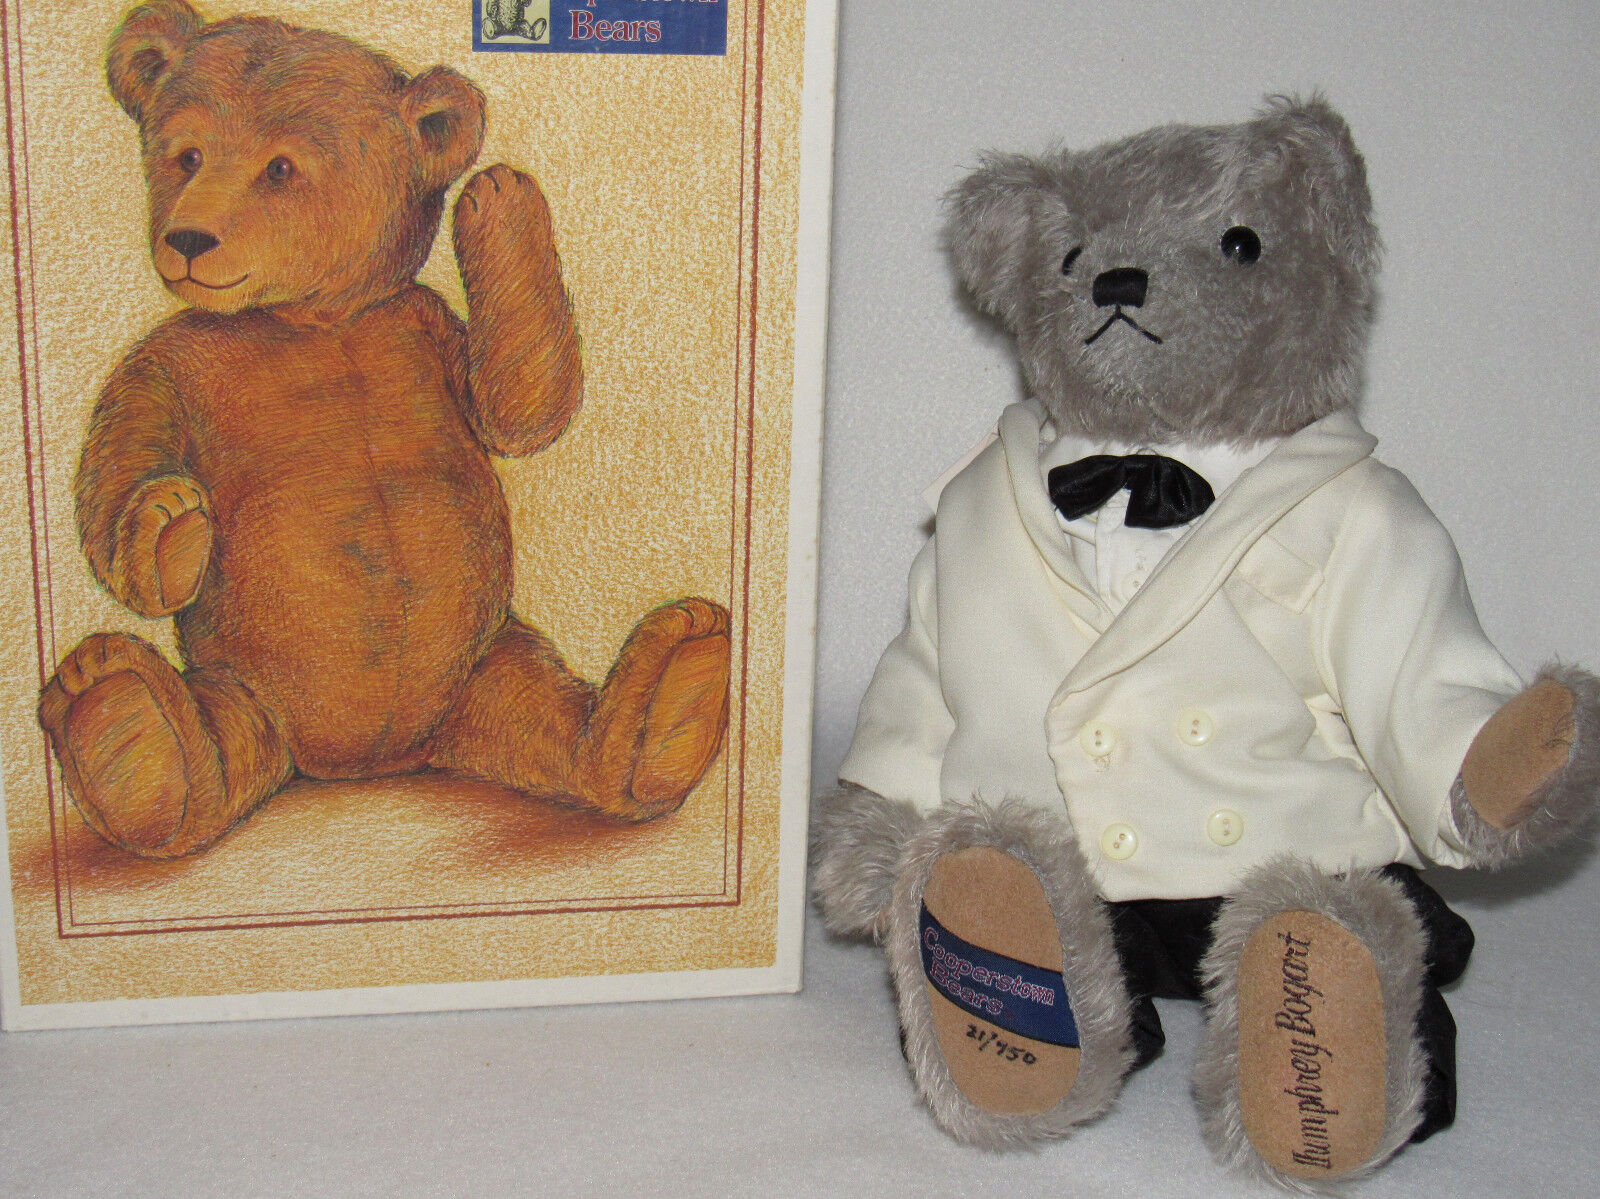 HUMPHREY BOGART  COOPERSTOWN FULLY JOINTED 16  MOHAIR LTD ED BEAR - MIB & TAGS